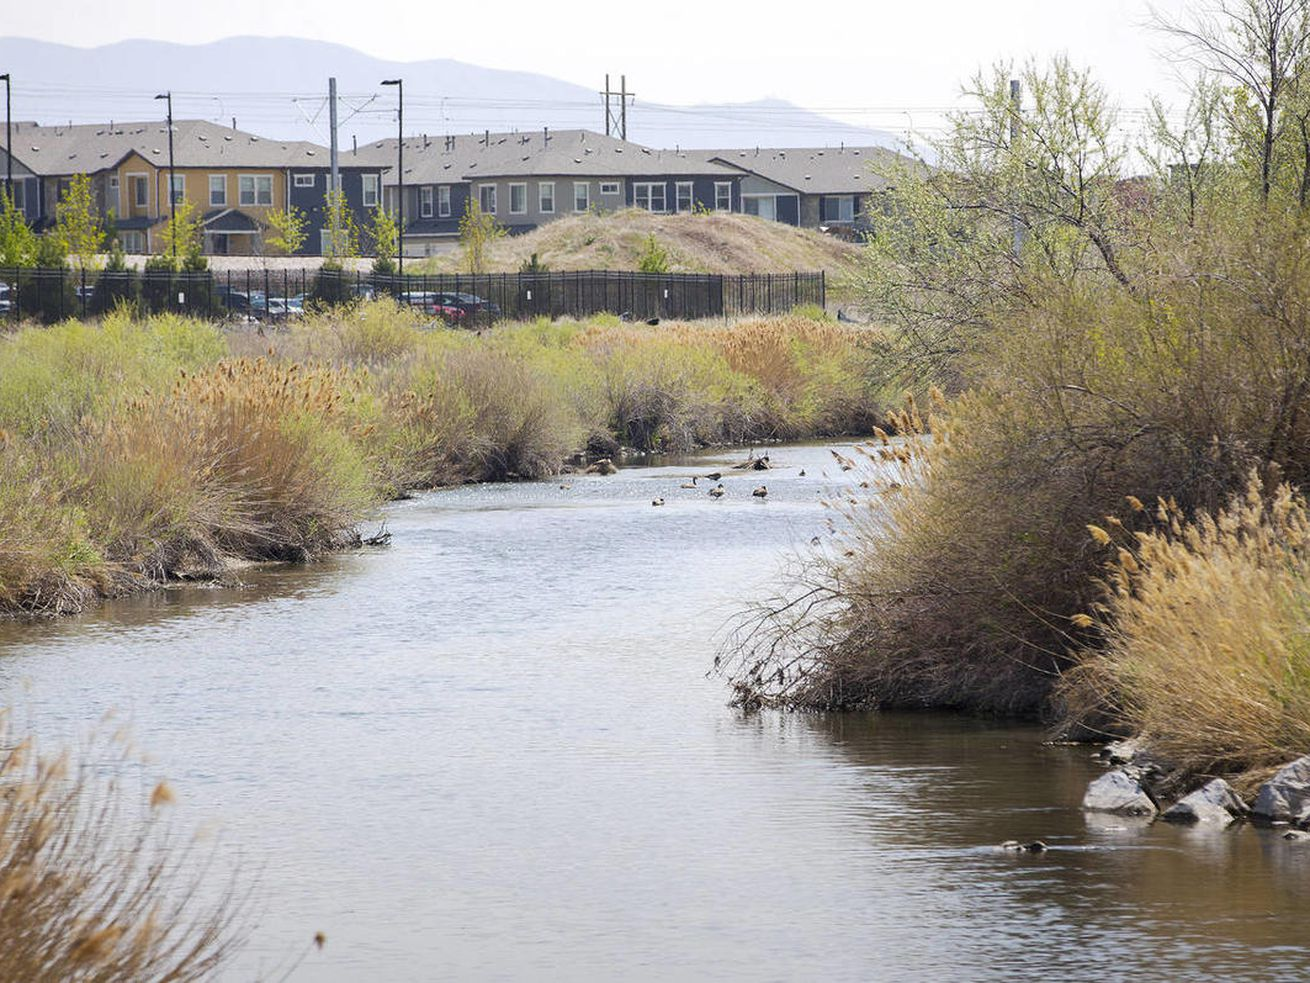 The Jordan river flows past the old smelter area of the Midvale slag superfund site as it was officially removed from the U.S. Superfund list at a ceremony Monday, April 20, 2015, at FLSmidth in Midvale.